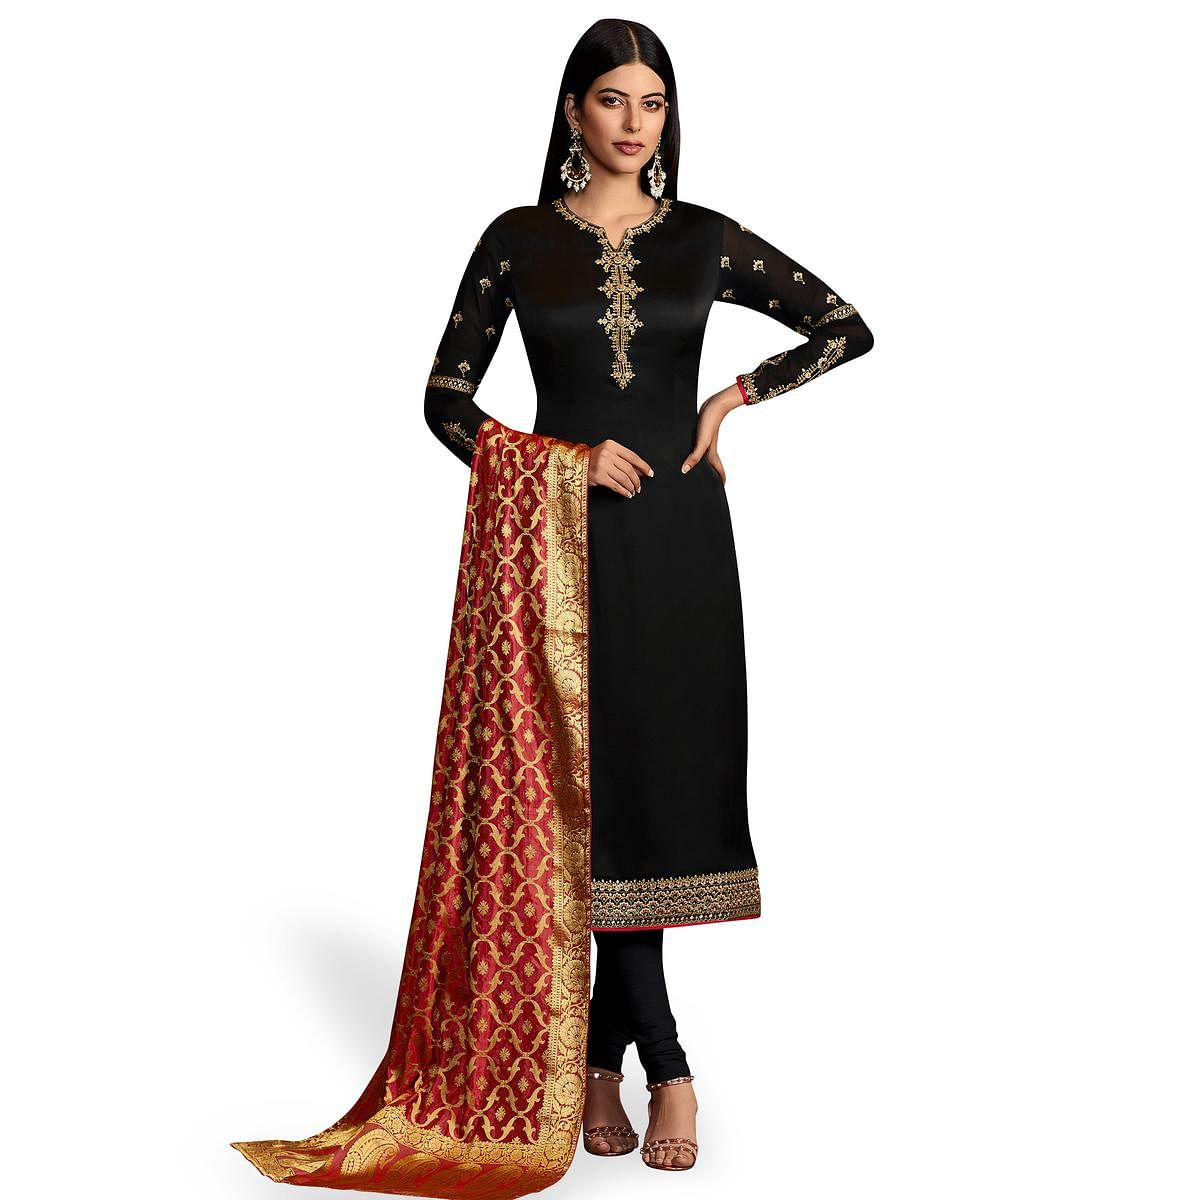 6a65b0dbef Buy Delightful Black Colored Party Wear Embroidered Georgette Salwar Suit  for womens online India, Best Prices, Reviews - Peachmode